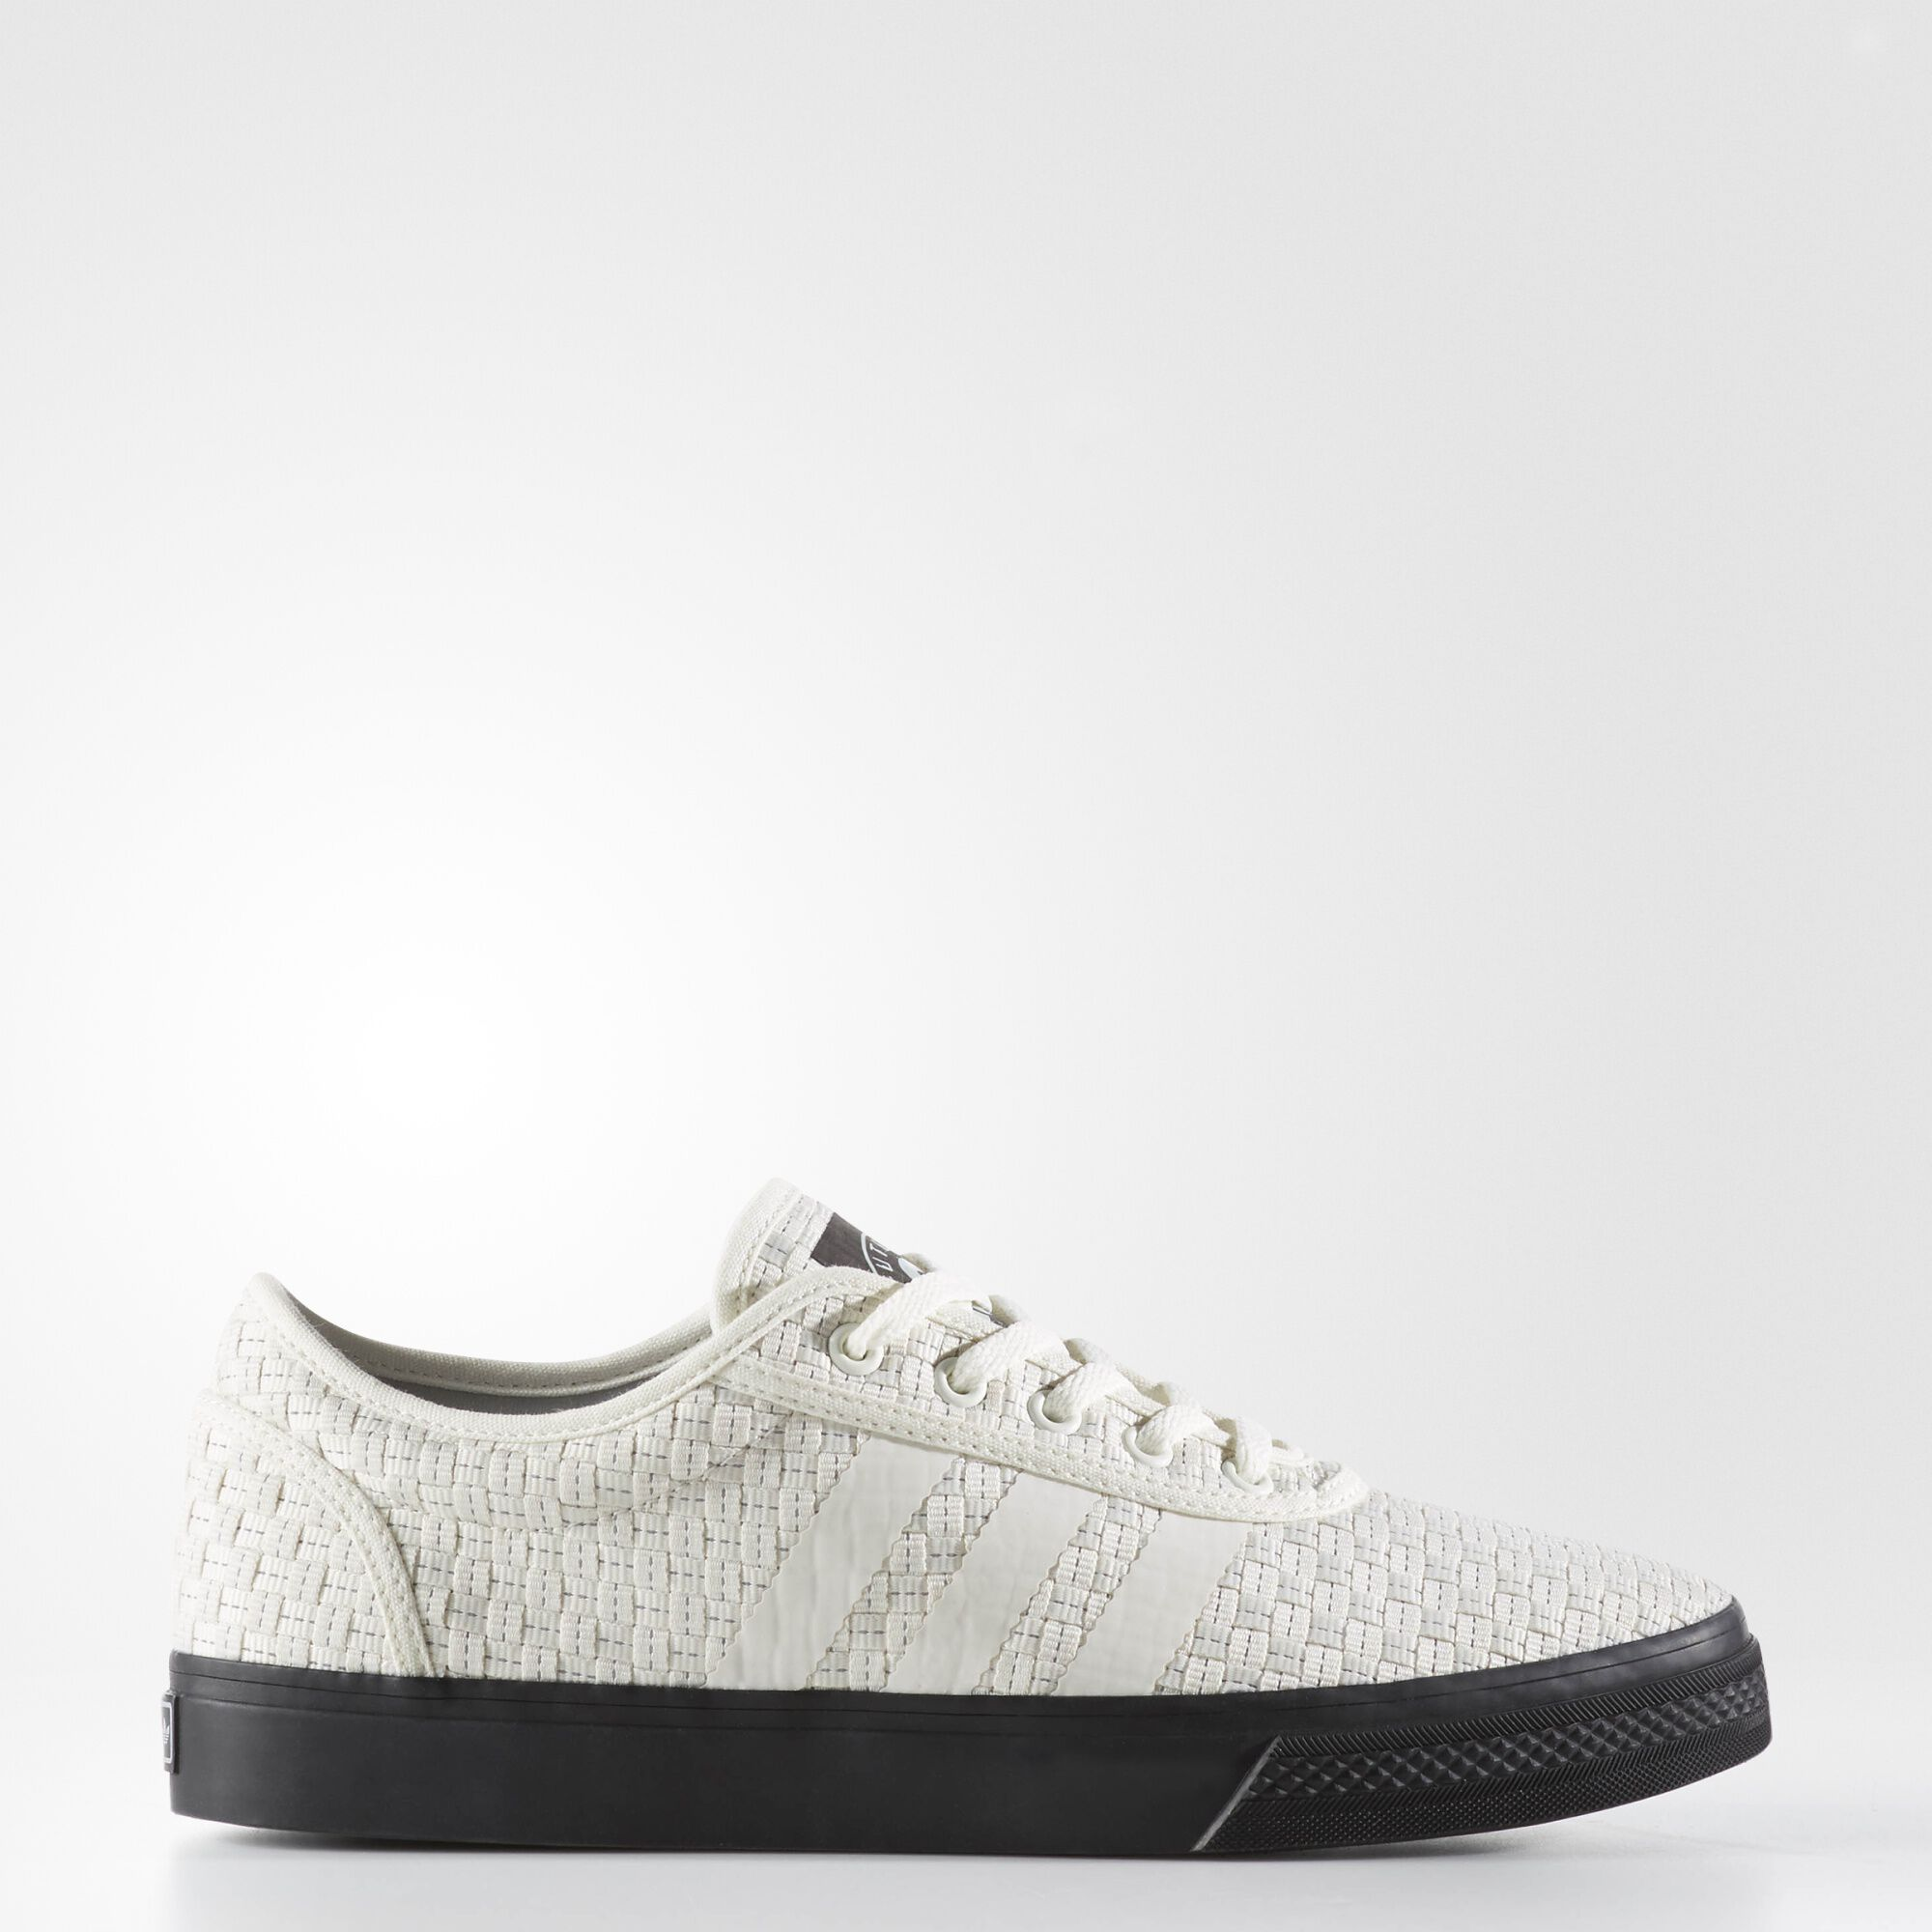 Adidas Superstar II m 4028 formadores Factory